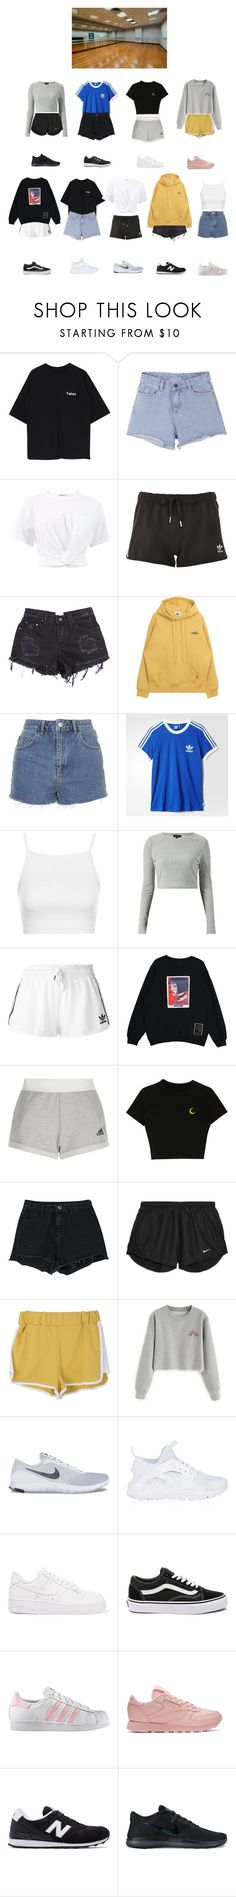 """""""BANGBANG """"TT"""" — Dance Practice"""" by bbofficial ❤ liked on Polyvore featuring Pink Stitch, T By Alexander Wang, adidas, Topshop, adidas Originals, NIKE, Vans, Reebok, New Balance and kpop"""